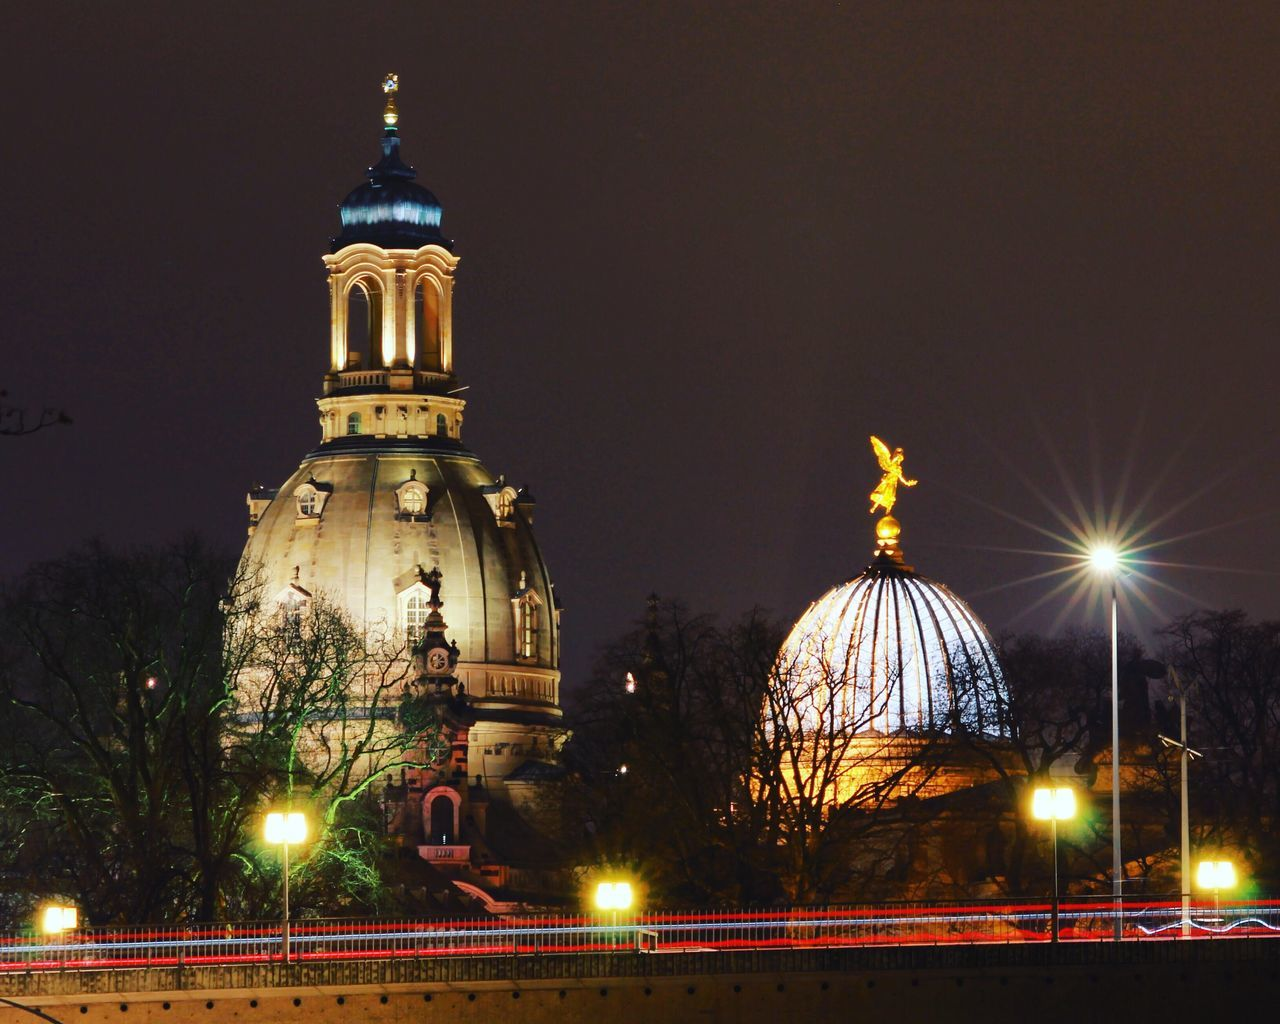 Dresden Cityscapes Frauenkirche Kirche Zitronenpresse Fama Cities At Night